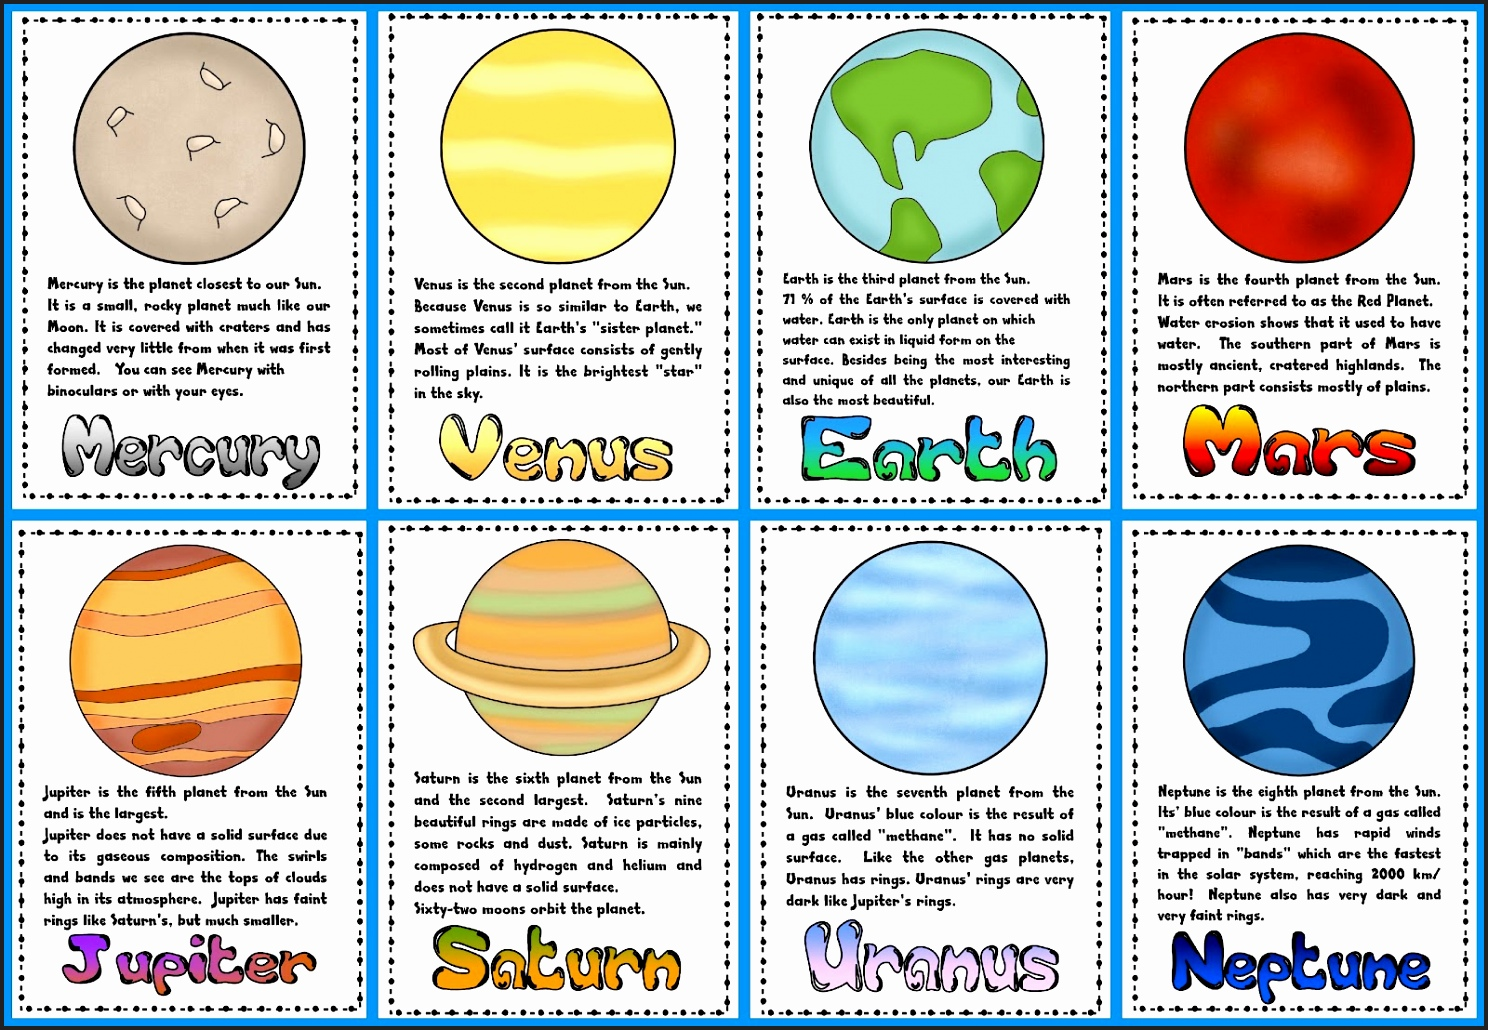 Planets clipart 8 planet. In our solar system